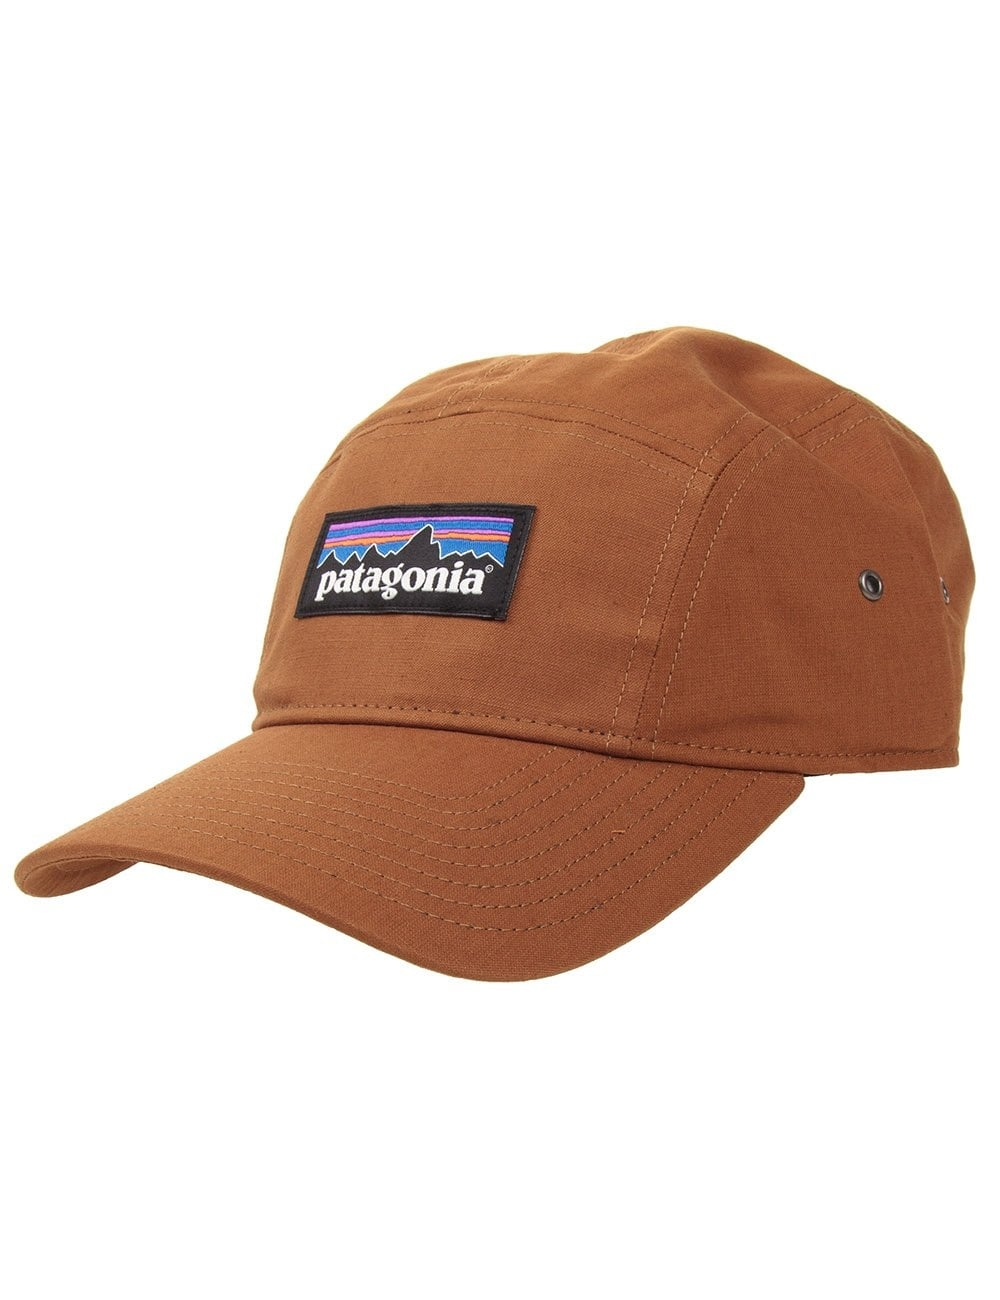 Patagonia Welding Cap - Bear Brown - Accessories from Fat Buddha ... b9f83213283